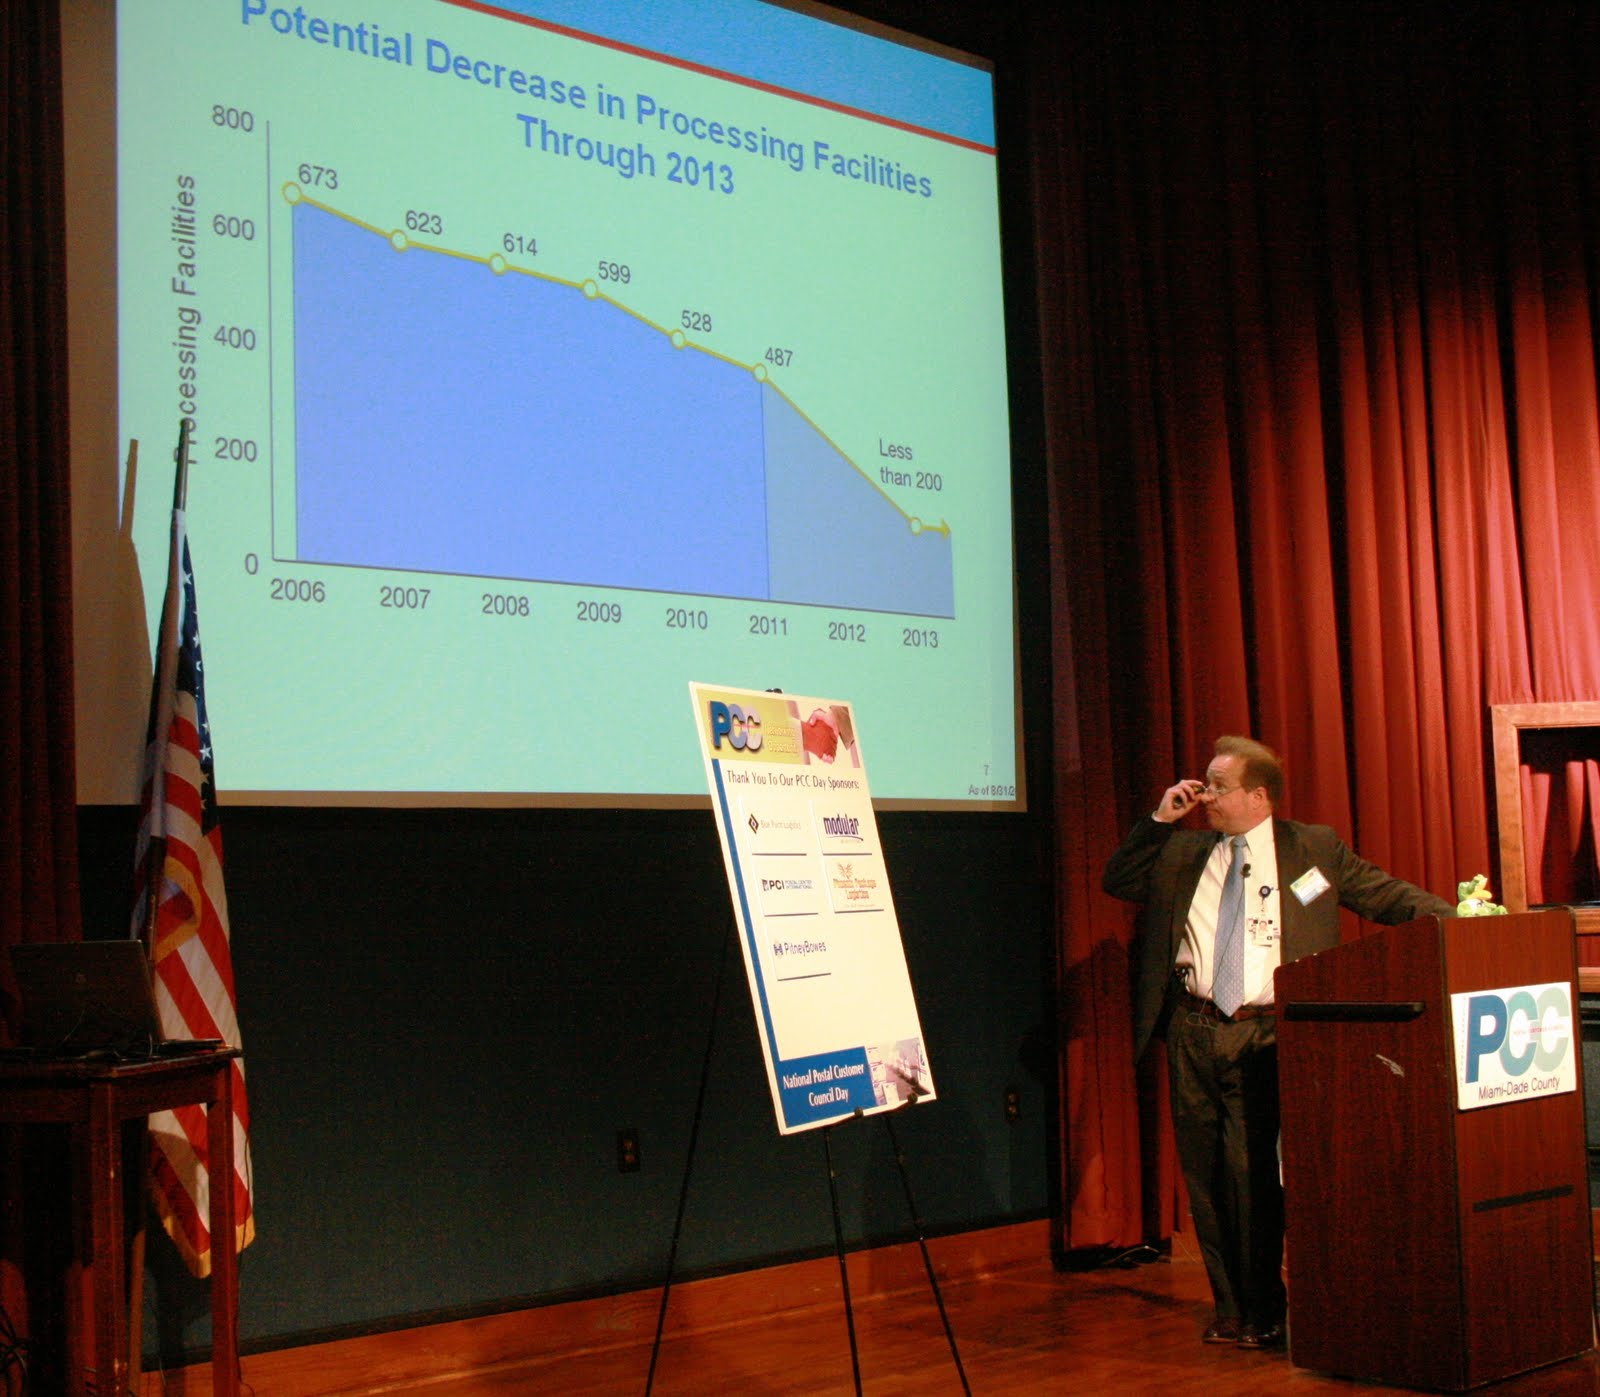 South florida postal blog national pcc day comes to hollywood for Becker study plan